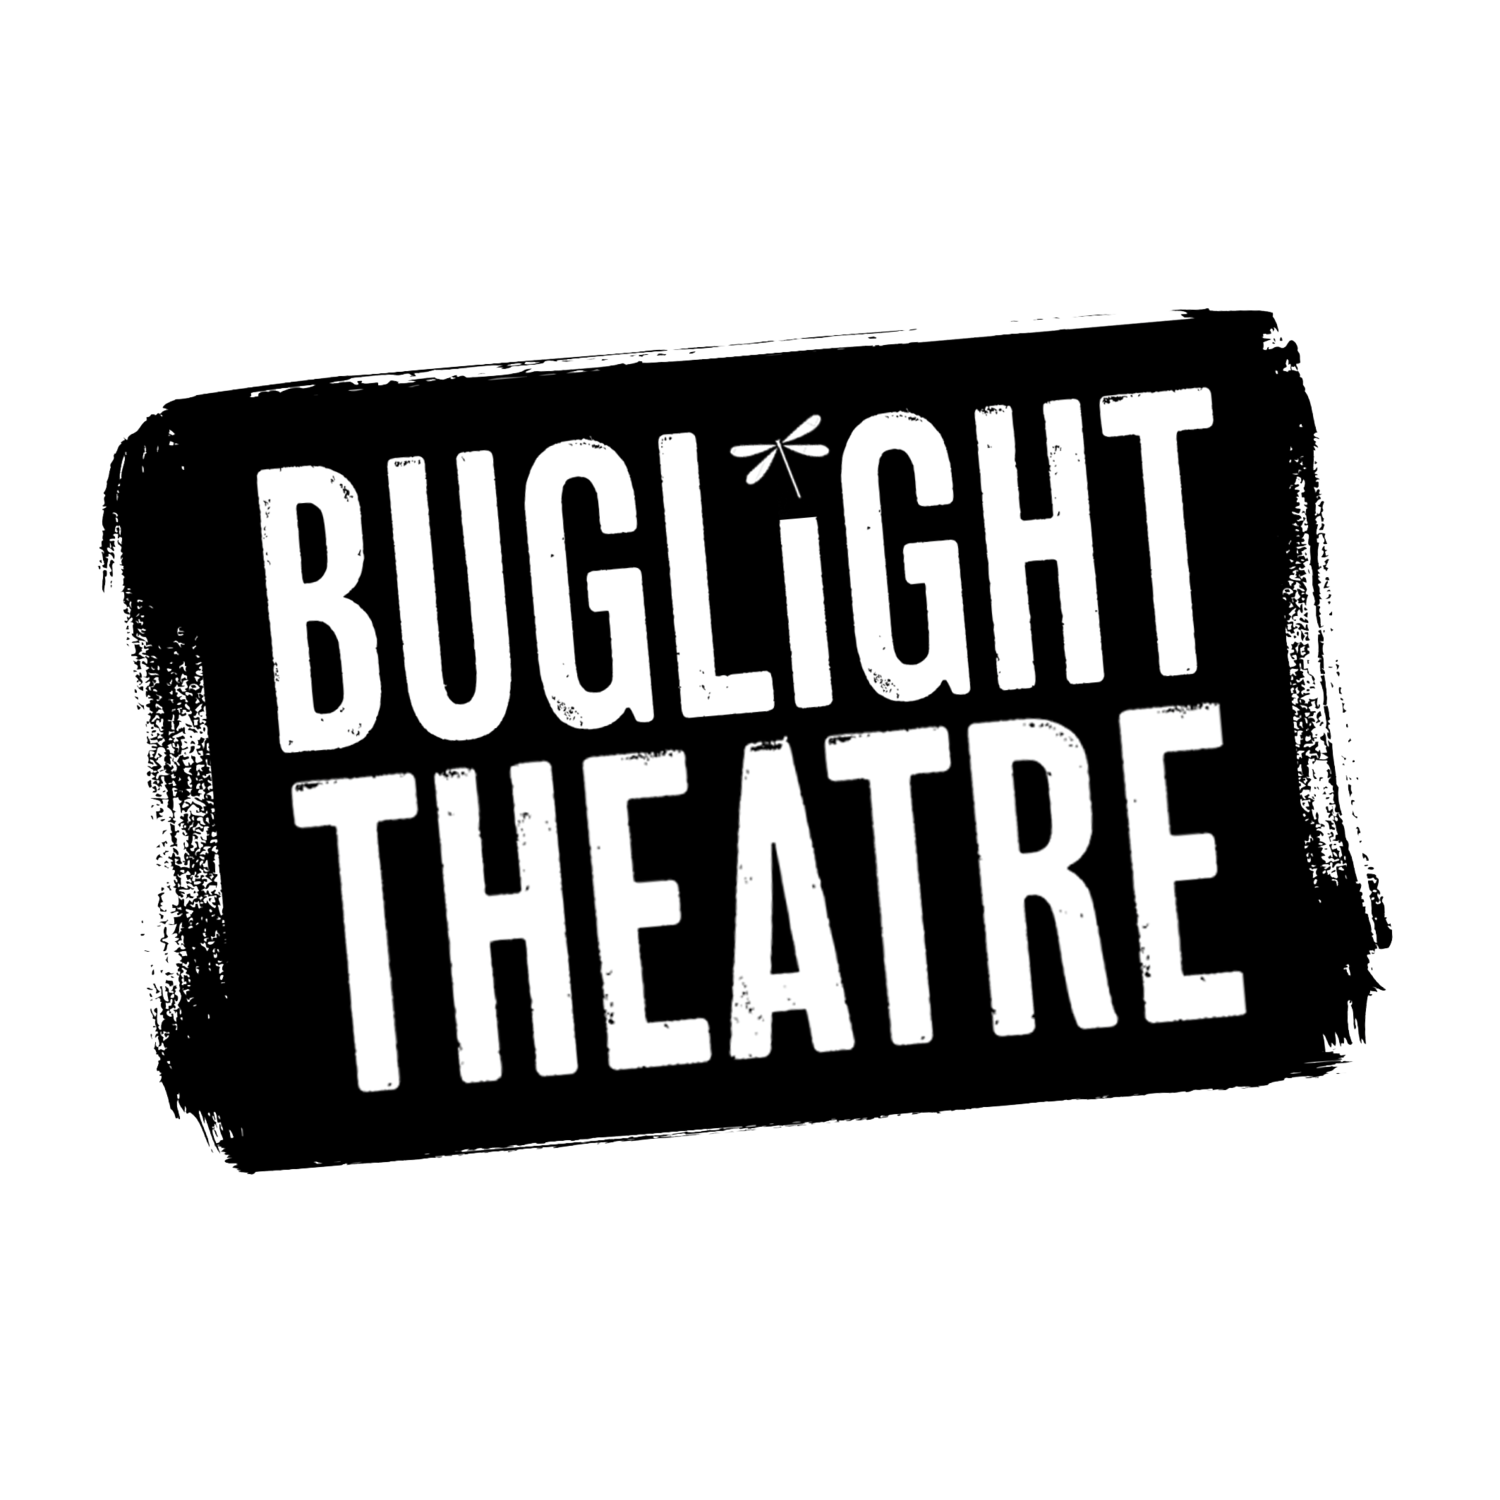 Buglight Theatre